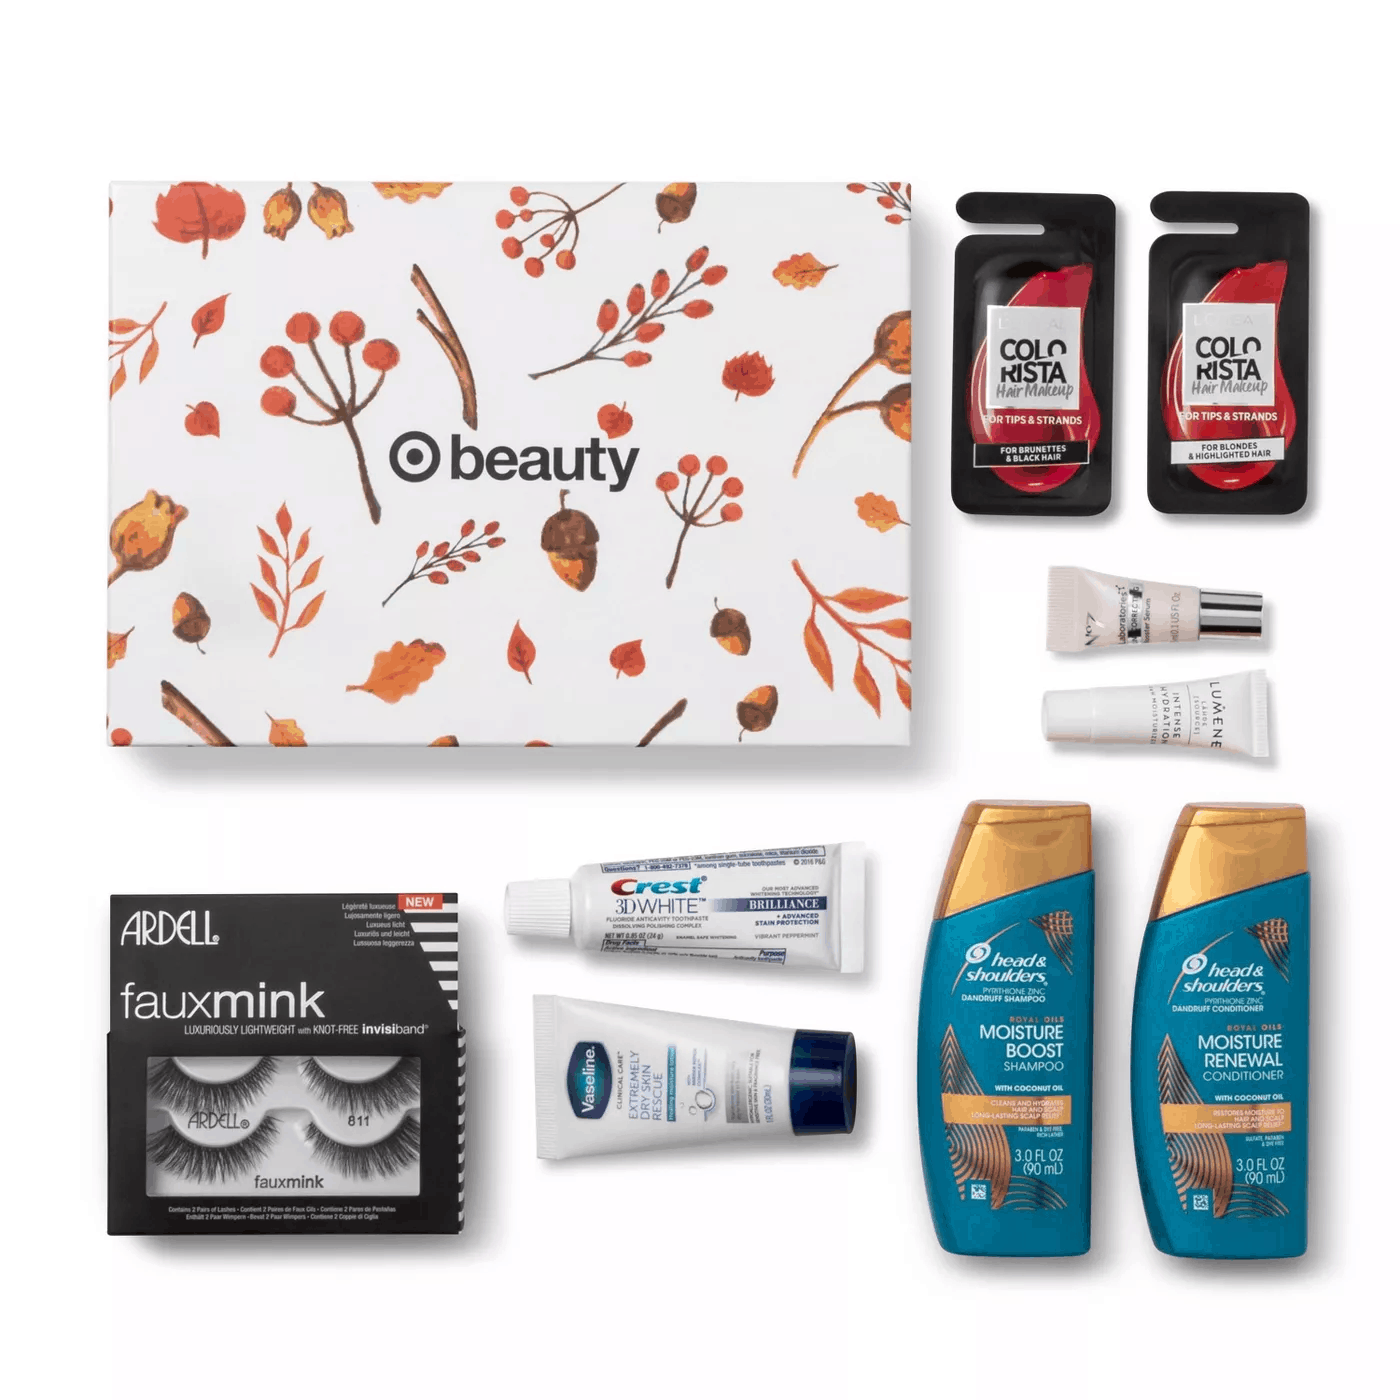 Target Beauty Box FREE with $40 Beauty Purchase!